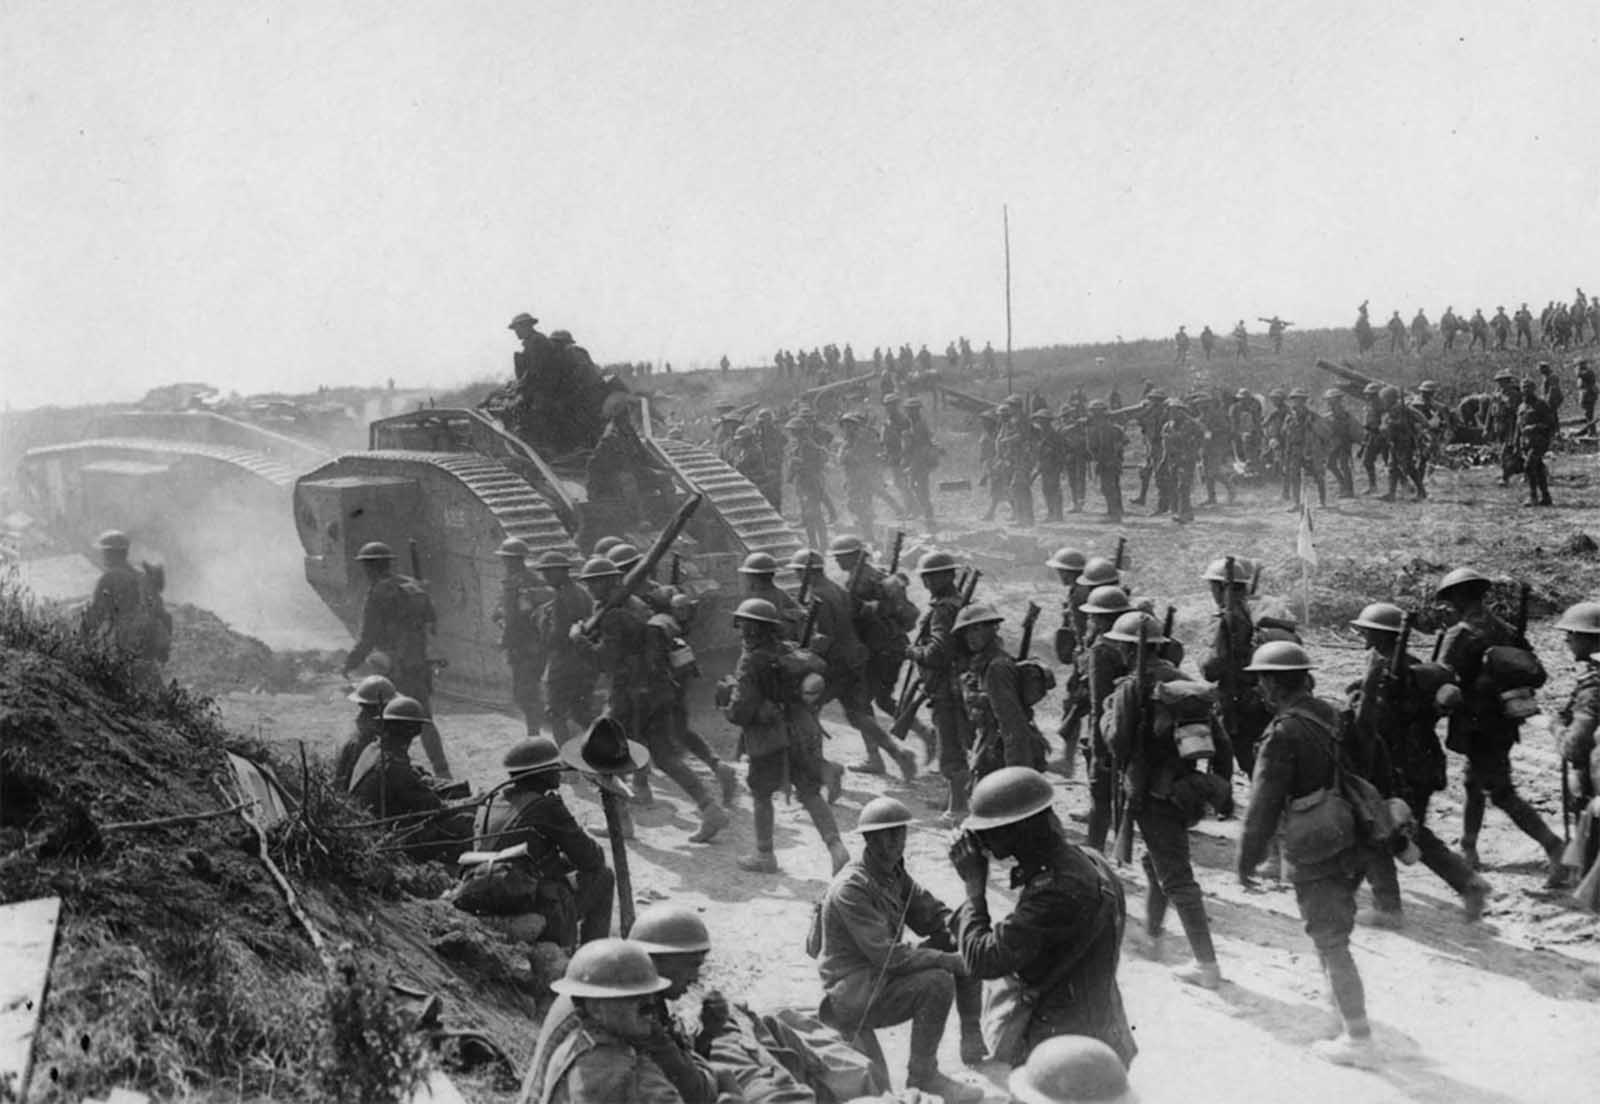 Allied advance on Bapaume, France, ca. 1917. Two tanks are moving towards the left, followed by troops. In the foreground some soldiers are sitting and standing at the roadside. One of them appears to be having a drink. Beside the men is what appears to be a rough wooden cross with an Australian or New Zealand service hat on it. In the background other troops are advancing, moving field guns and mortars.